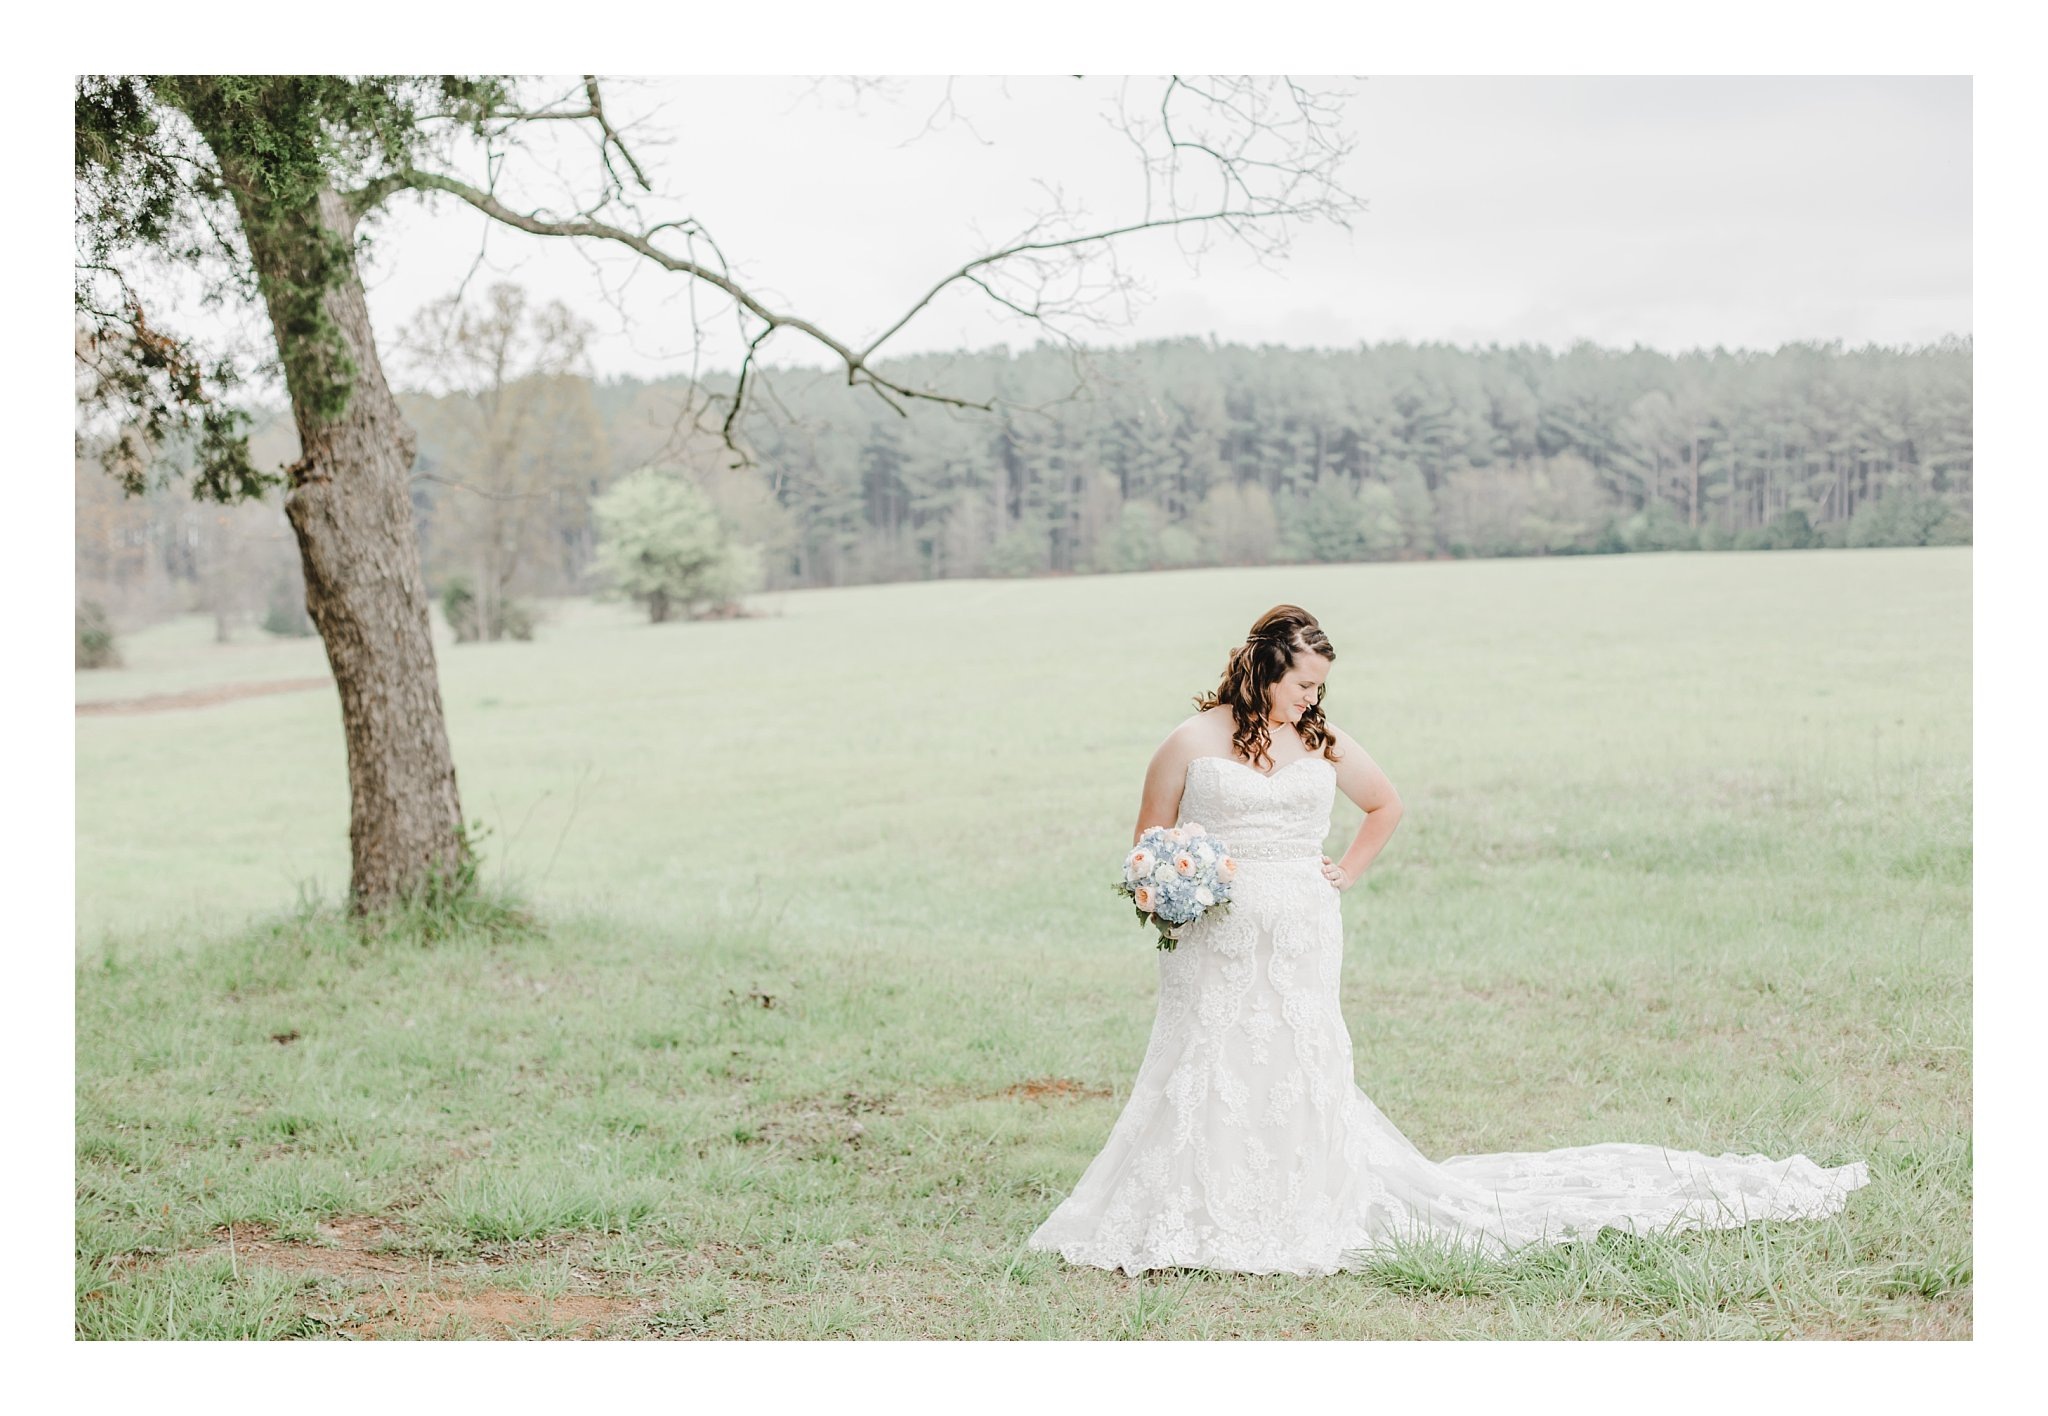 steel-blue-blush-spring-lace-gown-newberry-sc-wedding-photos-_0046.jpg